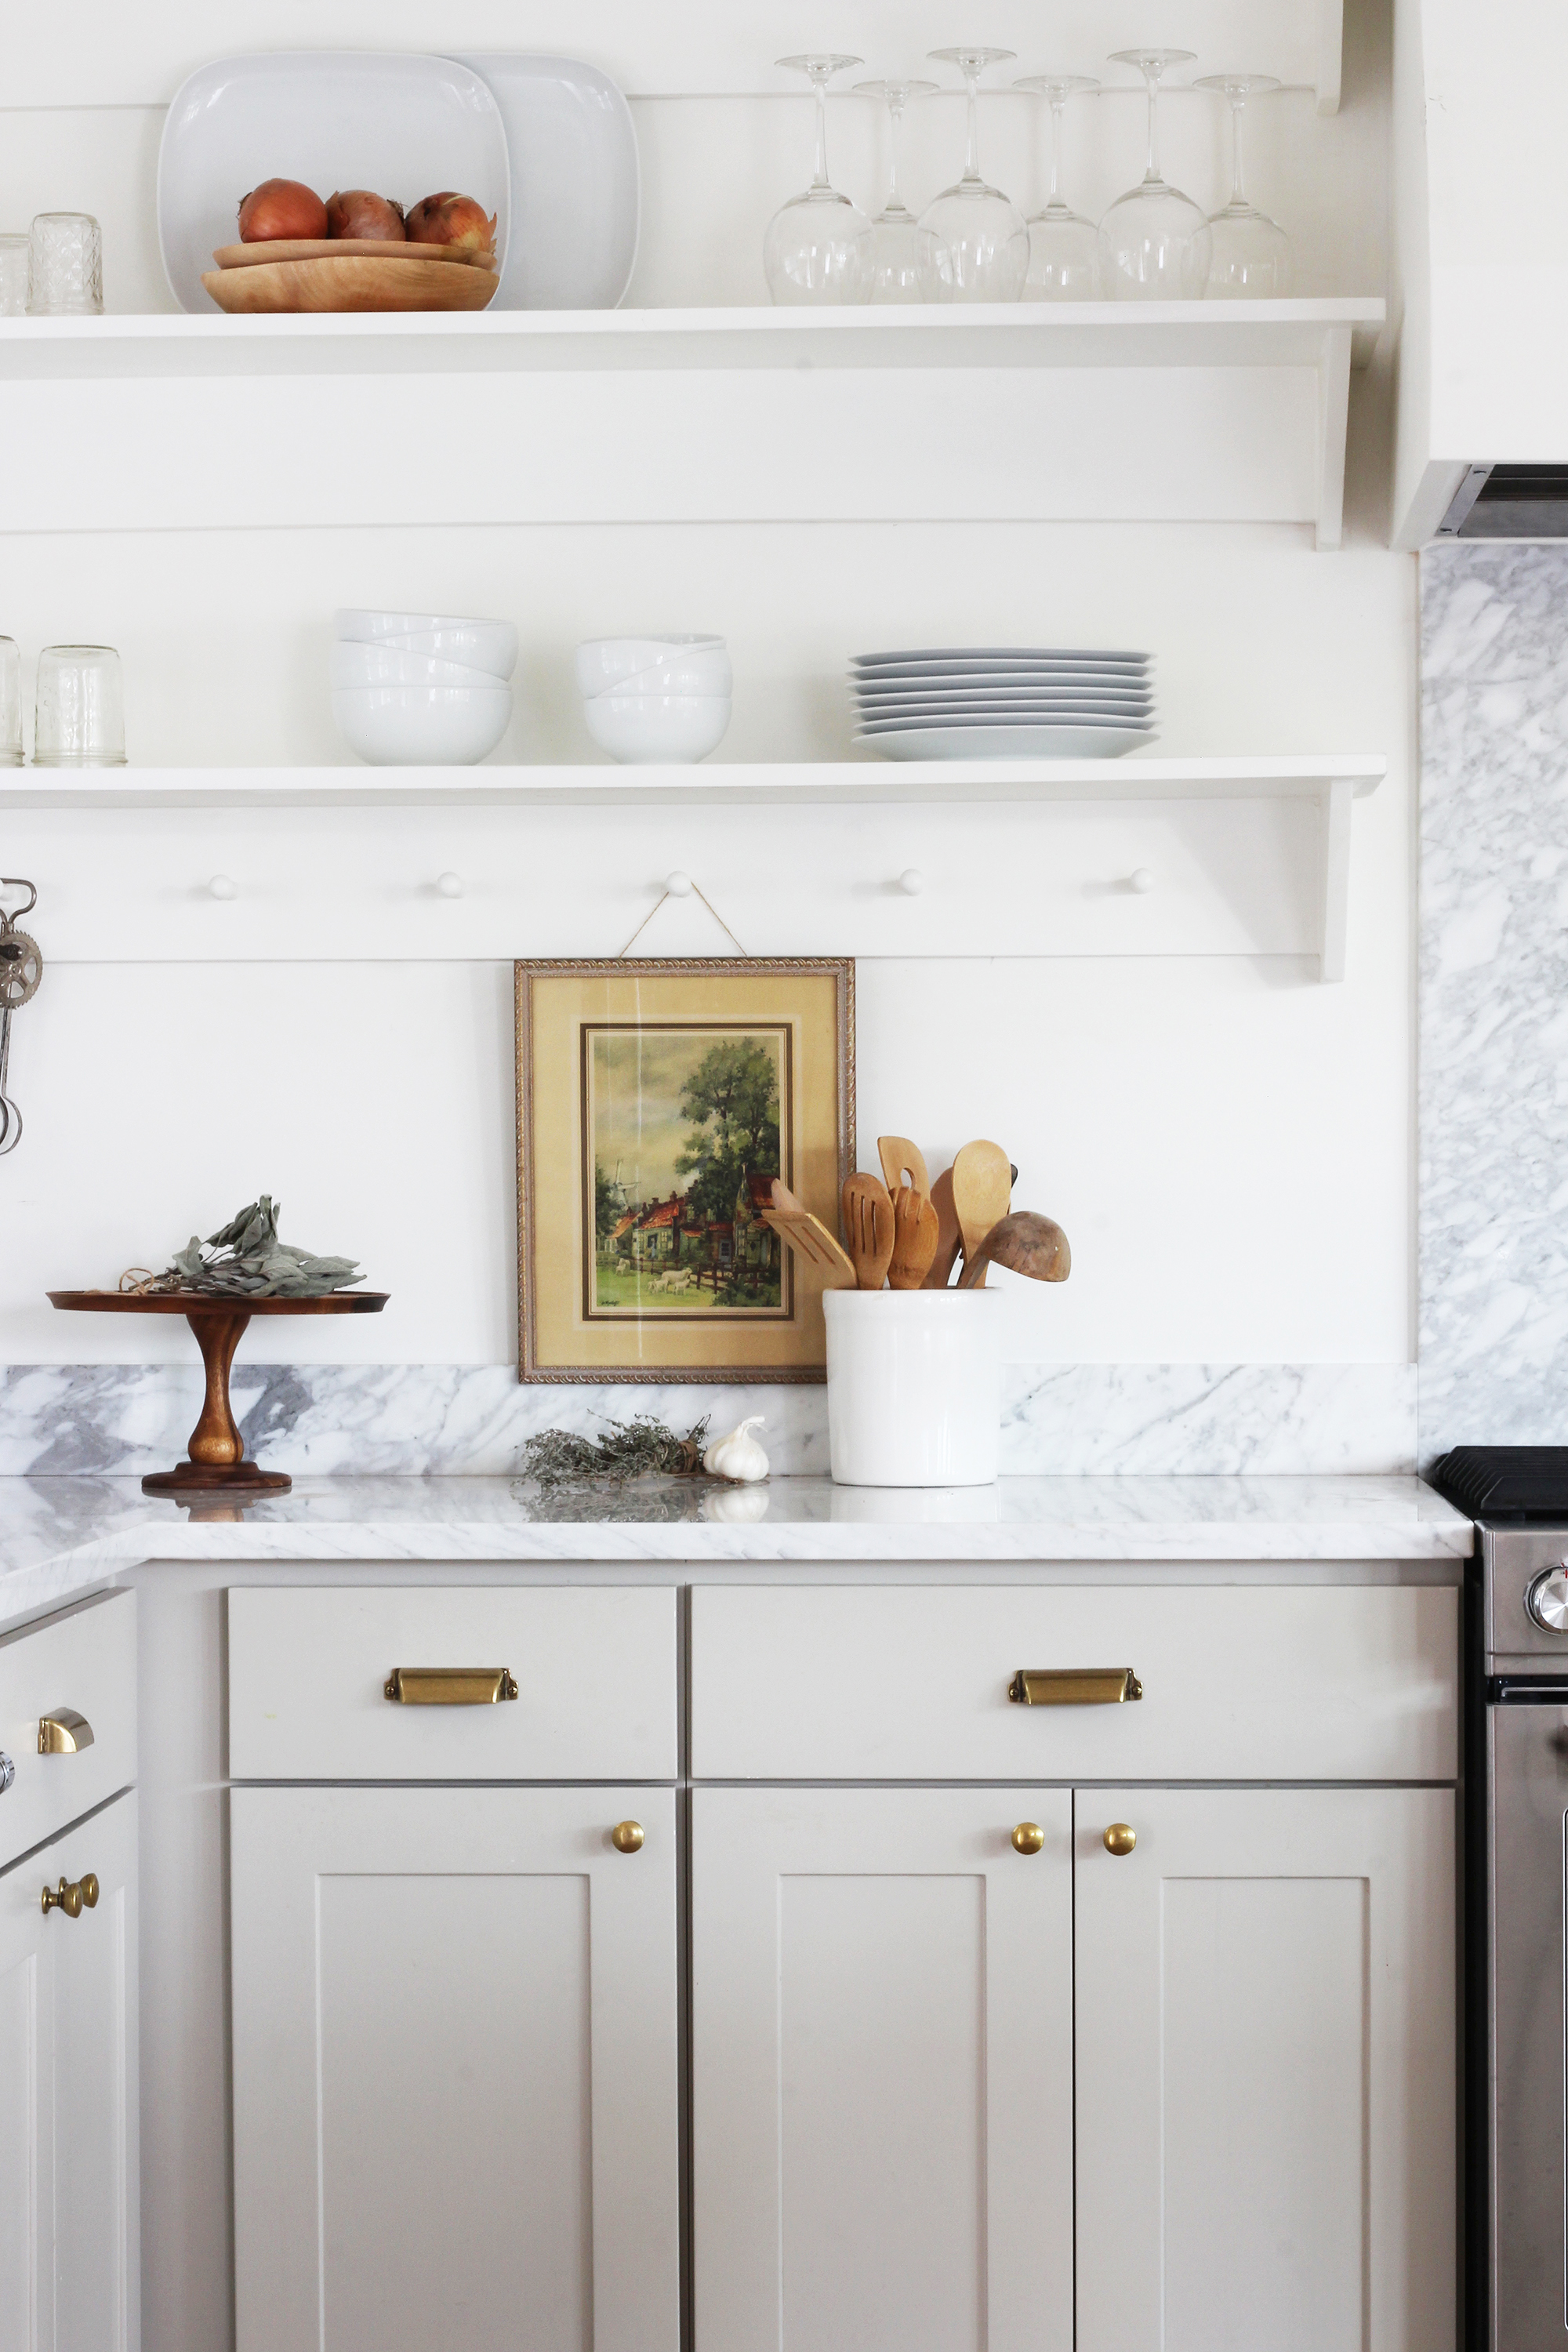 The Grit and Polish - Porch Adding vintage charm to new Kitchen Open Shelves.jpg